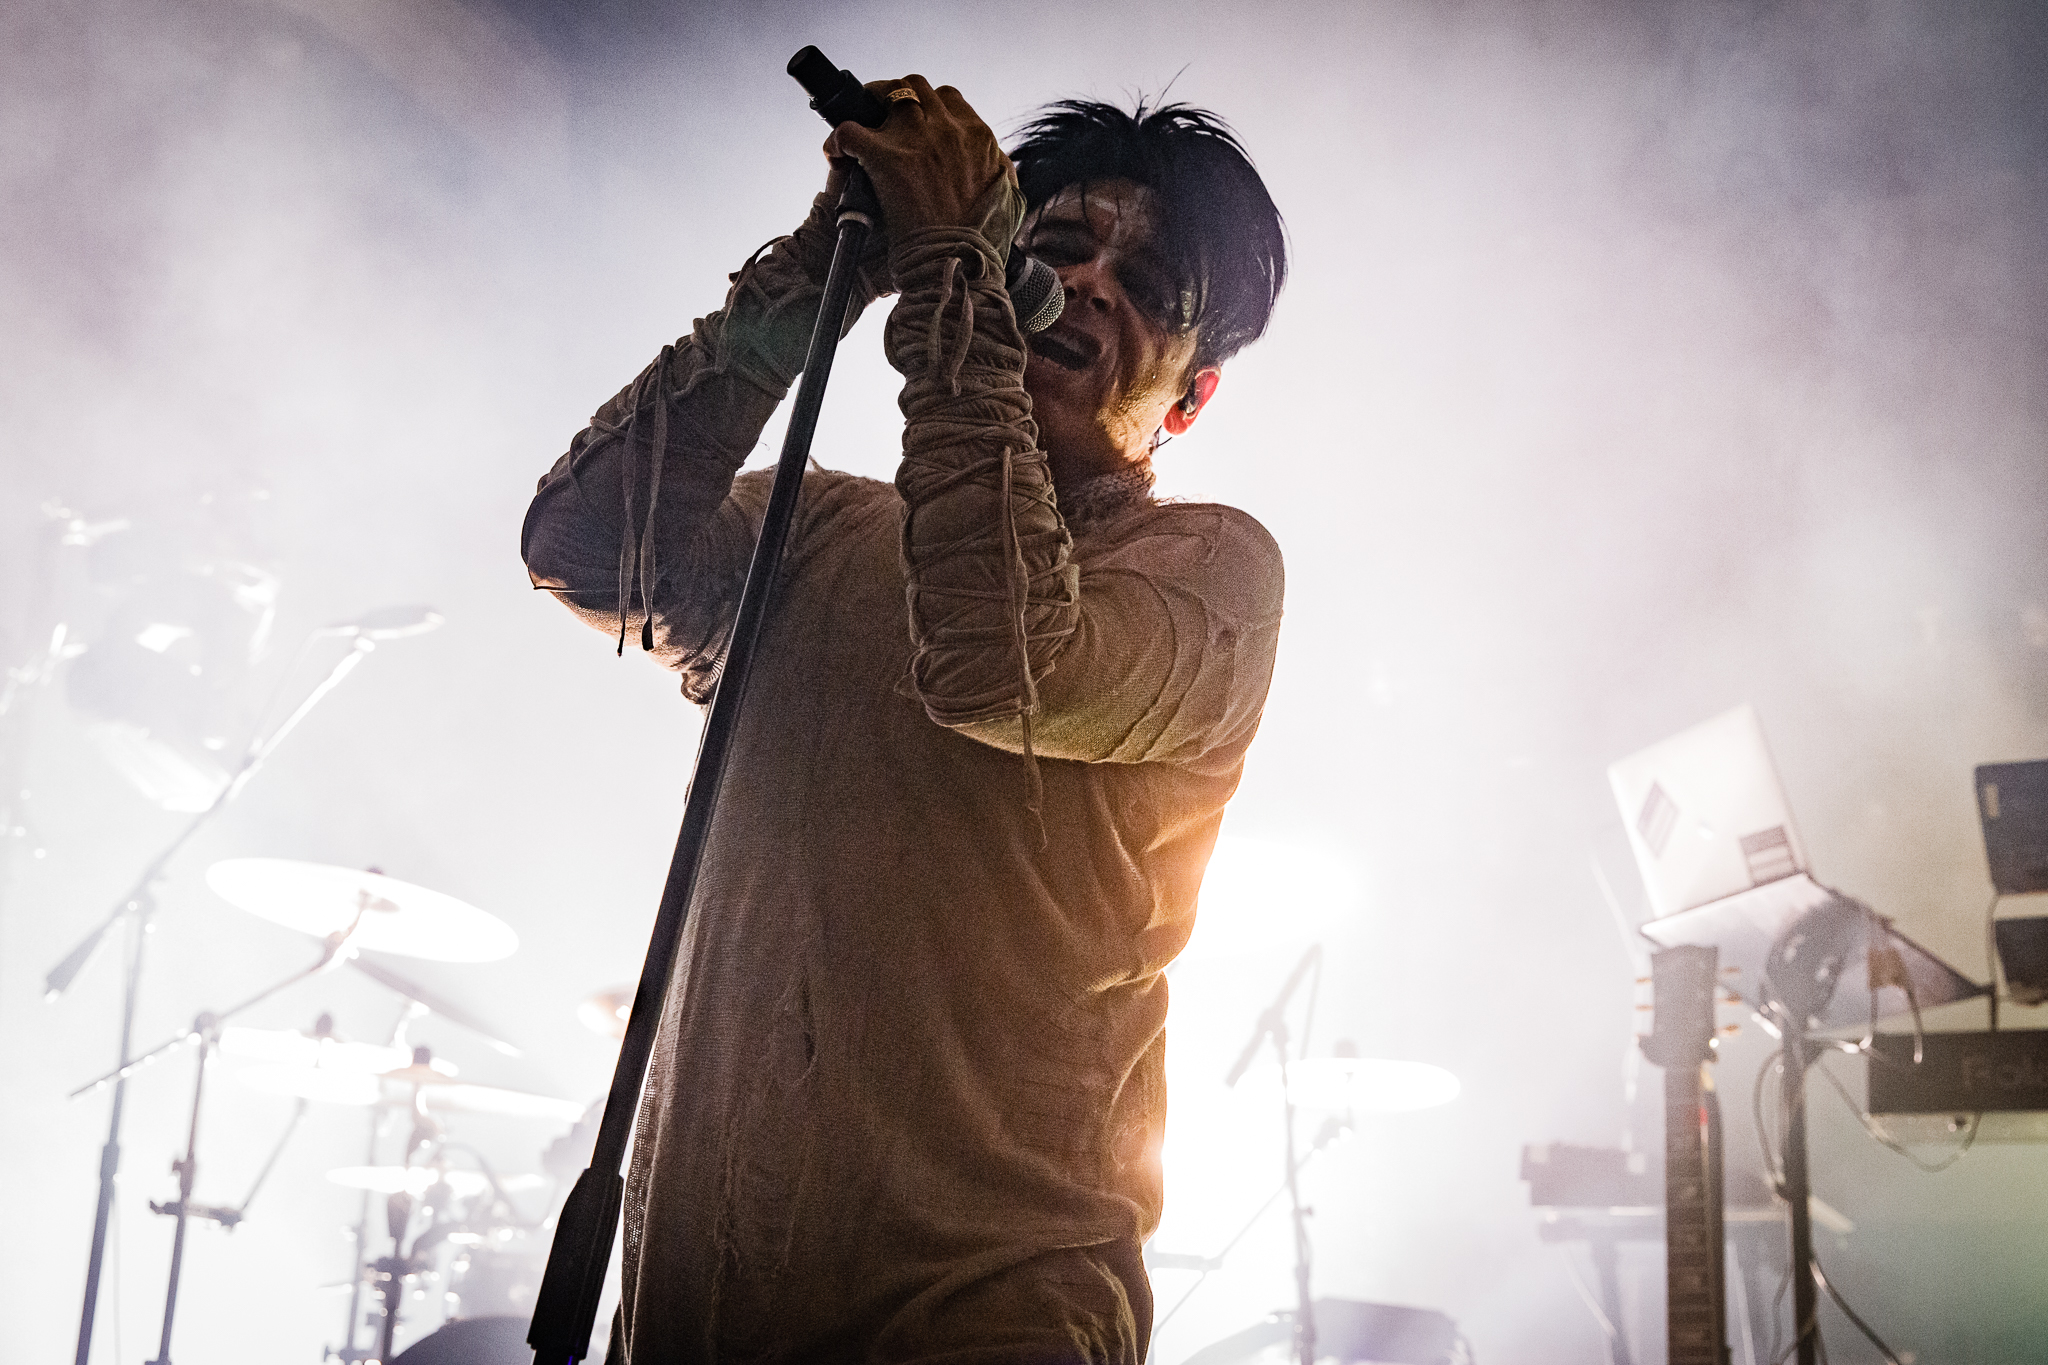 Gary Numan performing at the 9:30 Club in Washington, DC - 12/9/2017 (photo by Matt Condon / @arcane93)